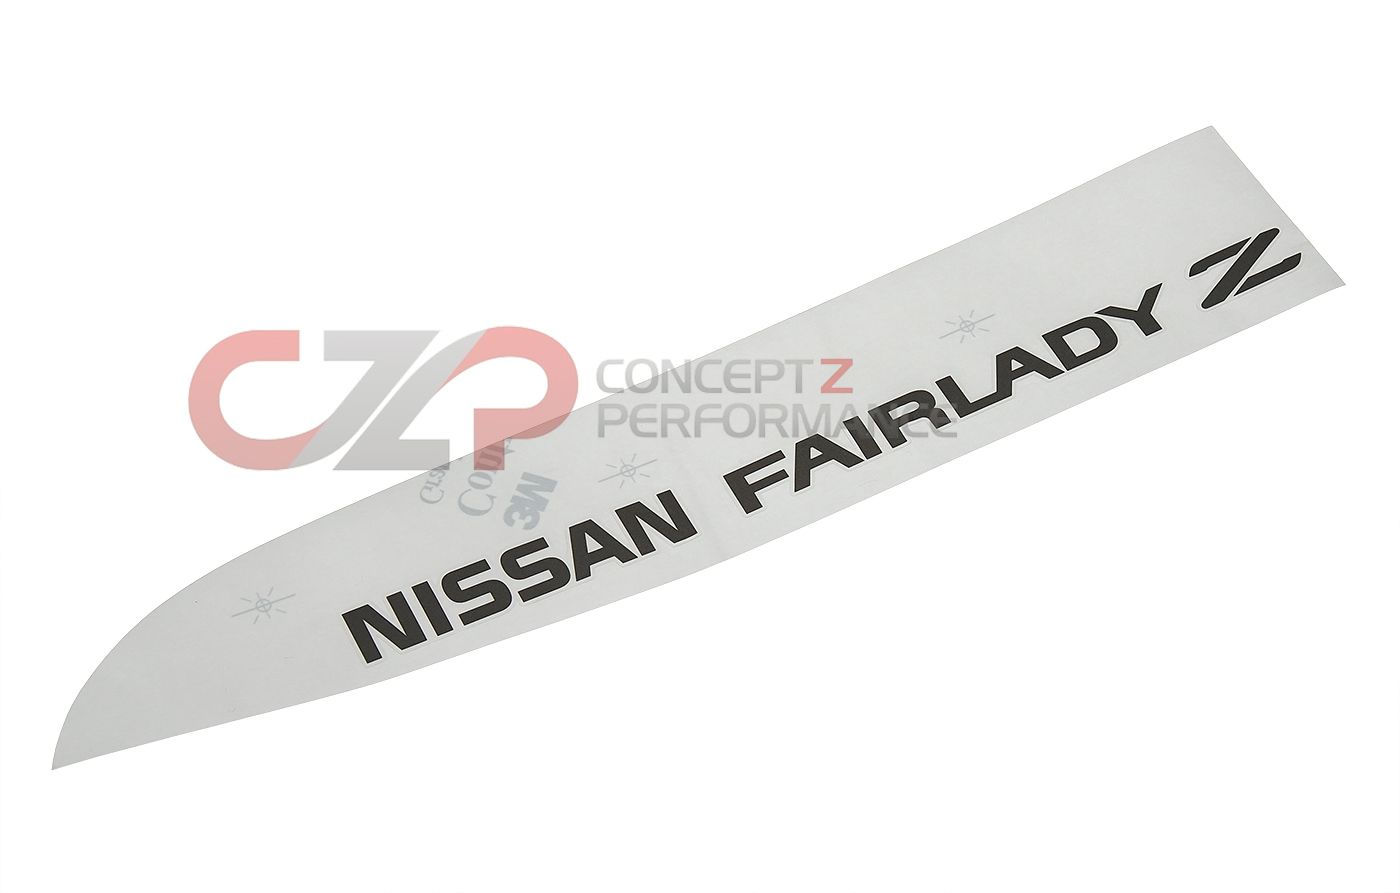 Apparel & Accessories :: Stickers & Decals - Concept Z Performance